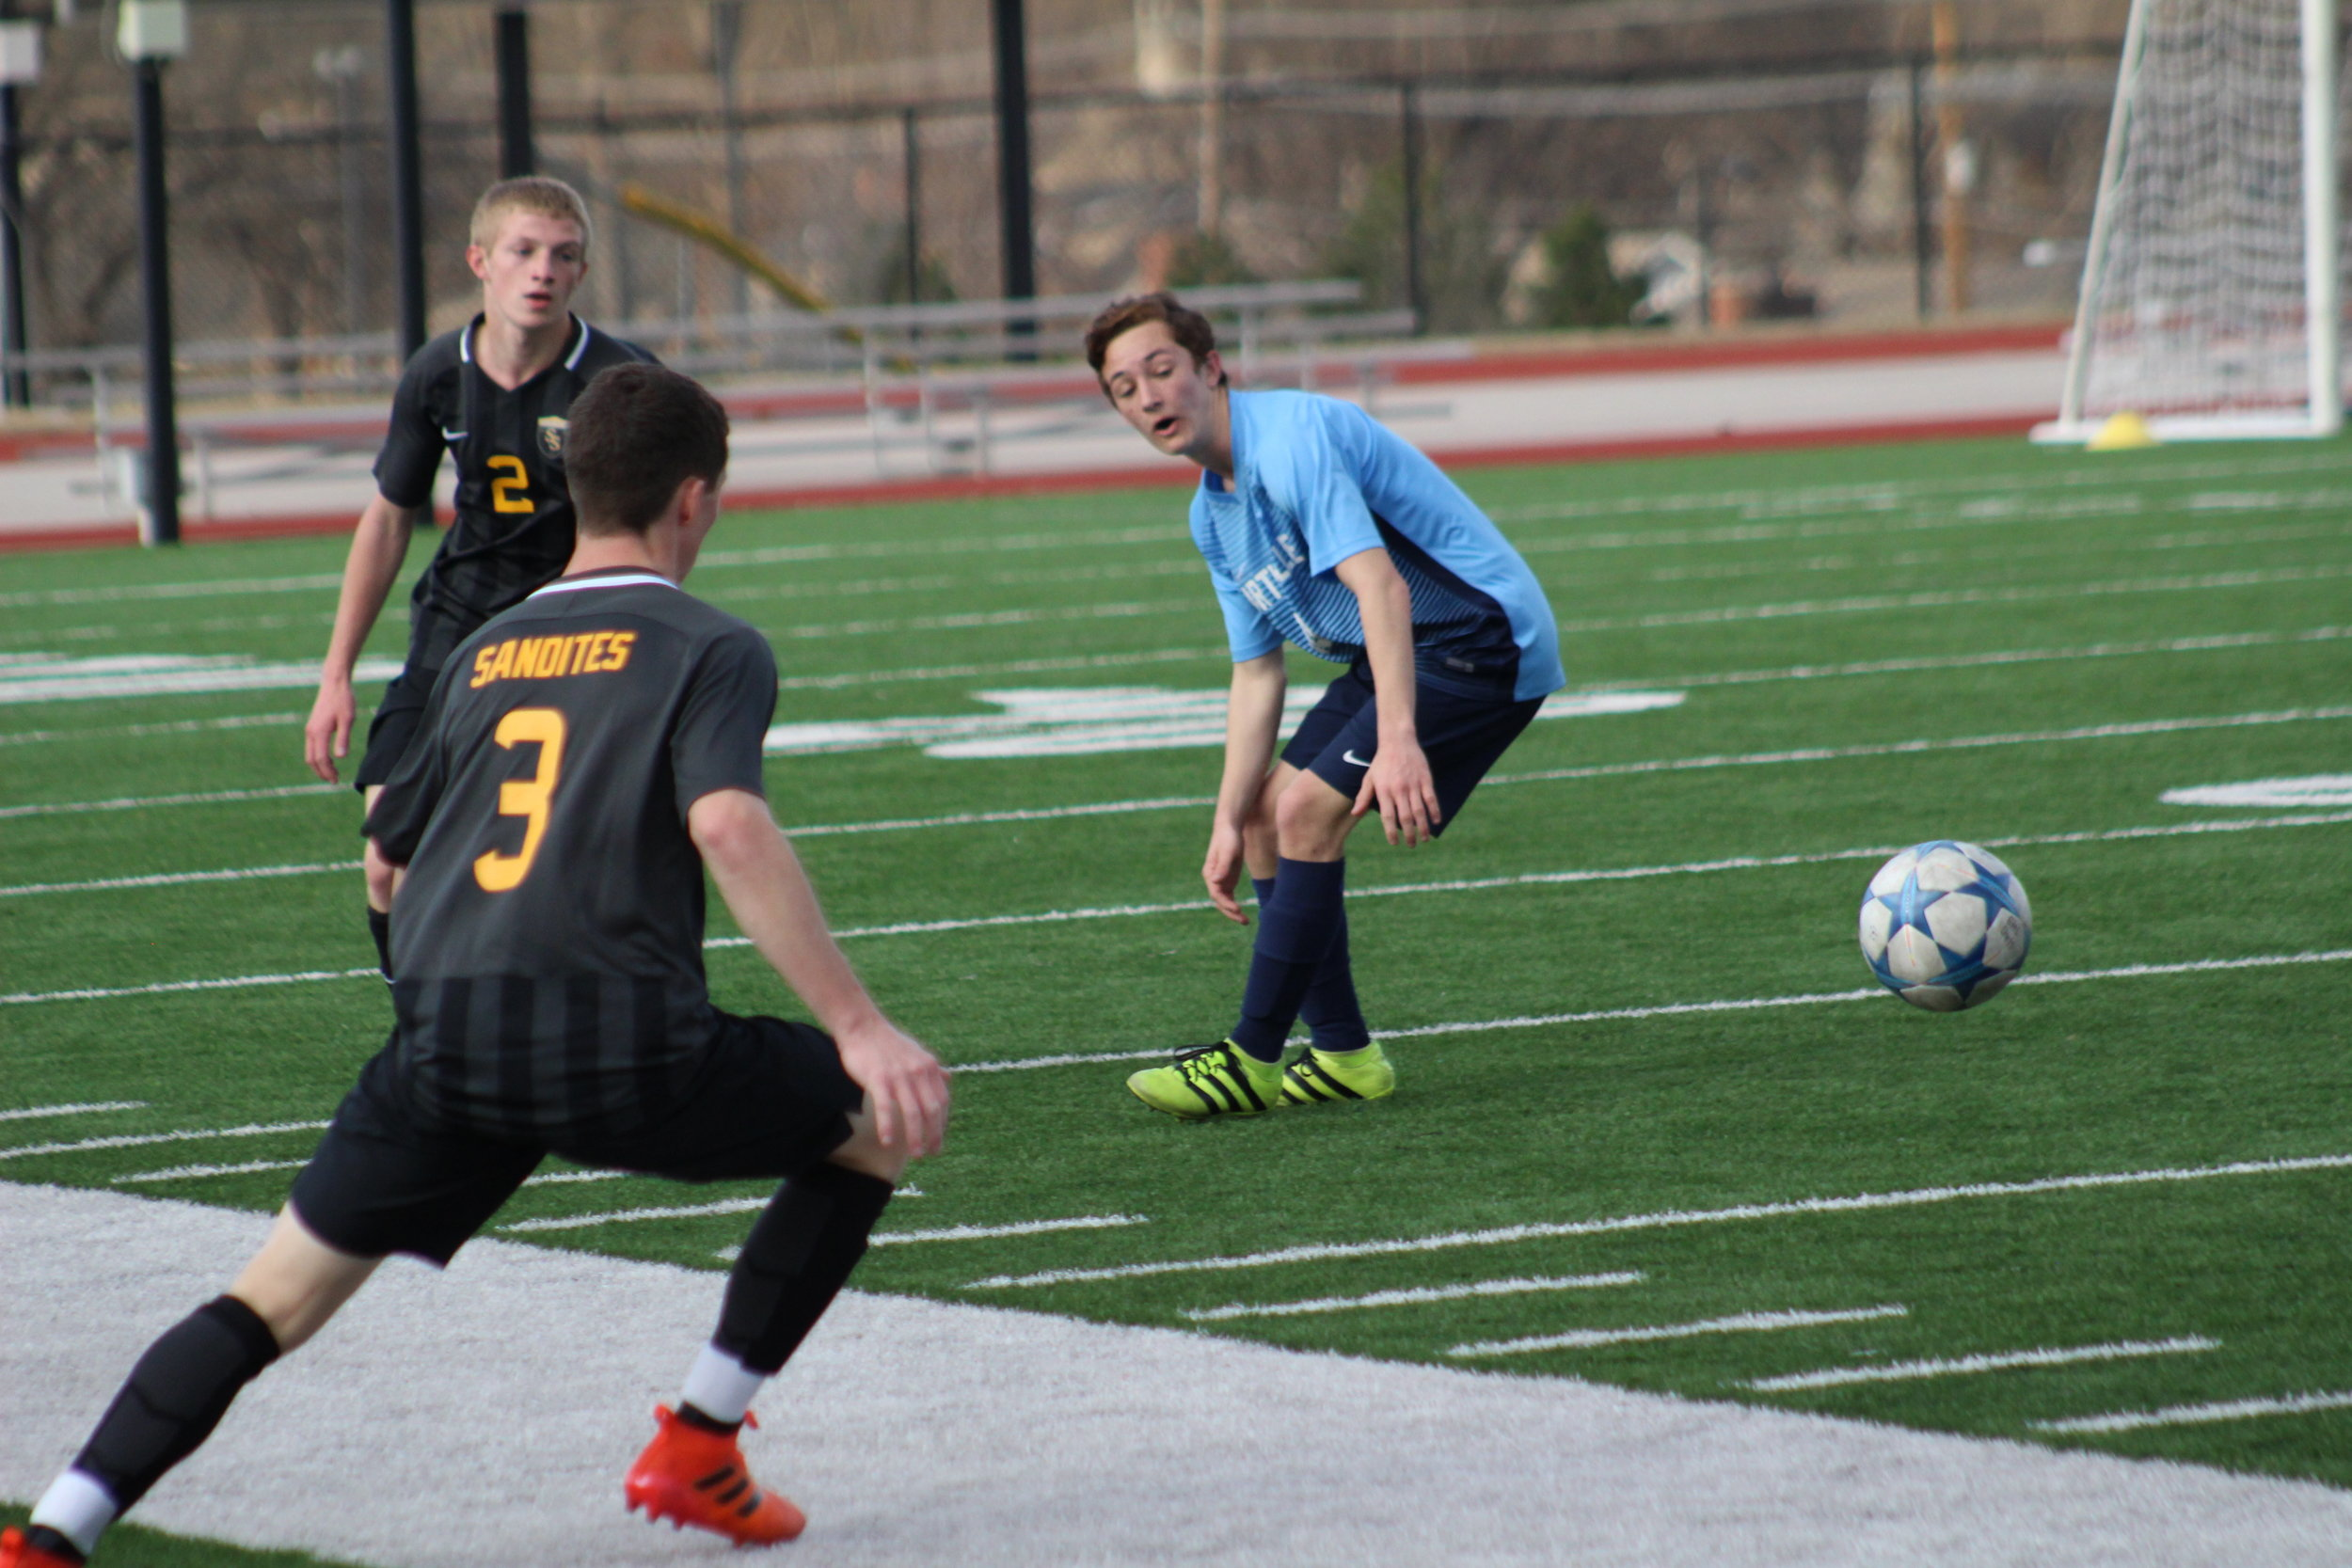 Sophomore Jaden Weiser scored the lone goal for the Sandites in an 8-1 Friday night loss at Union.